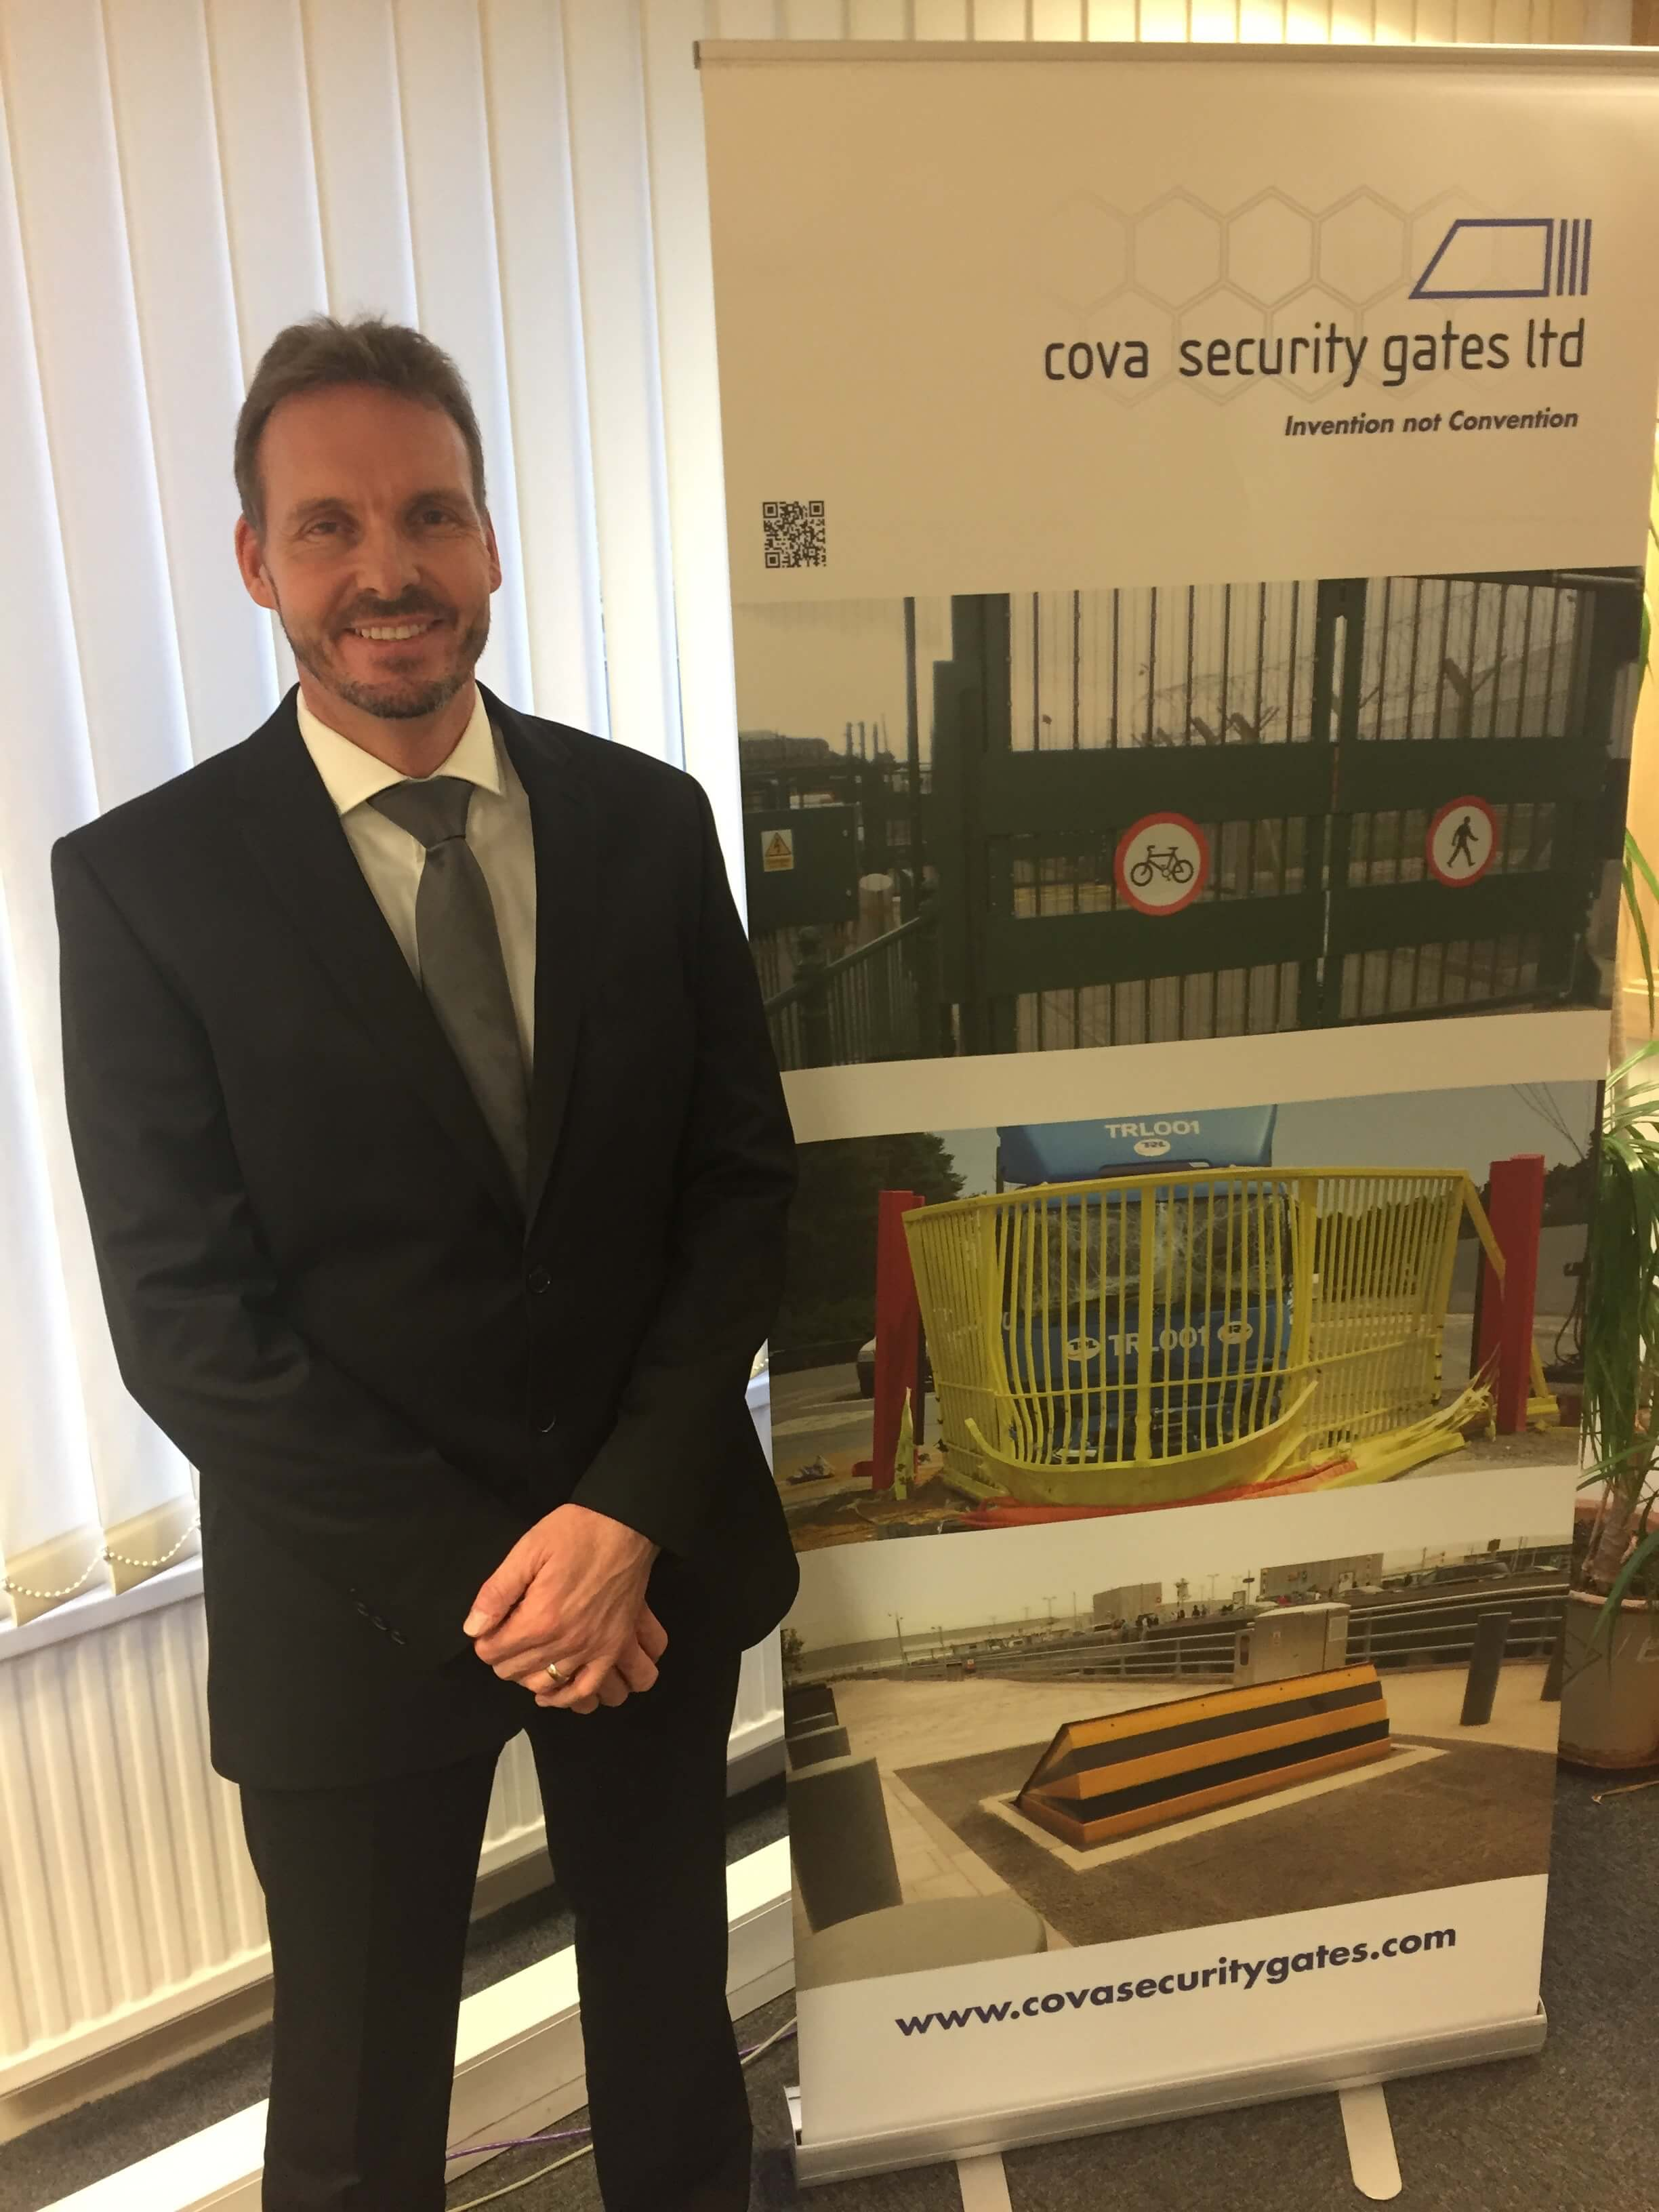 Cova Security Gates Appoints Two New Board Directors